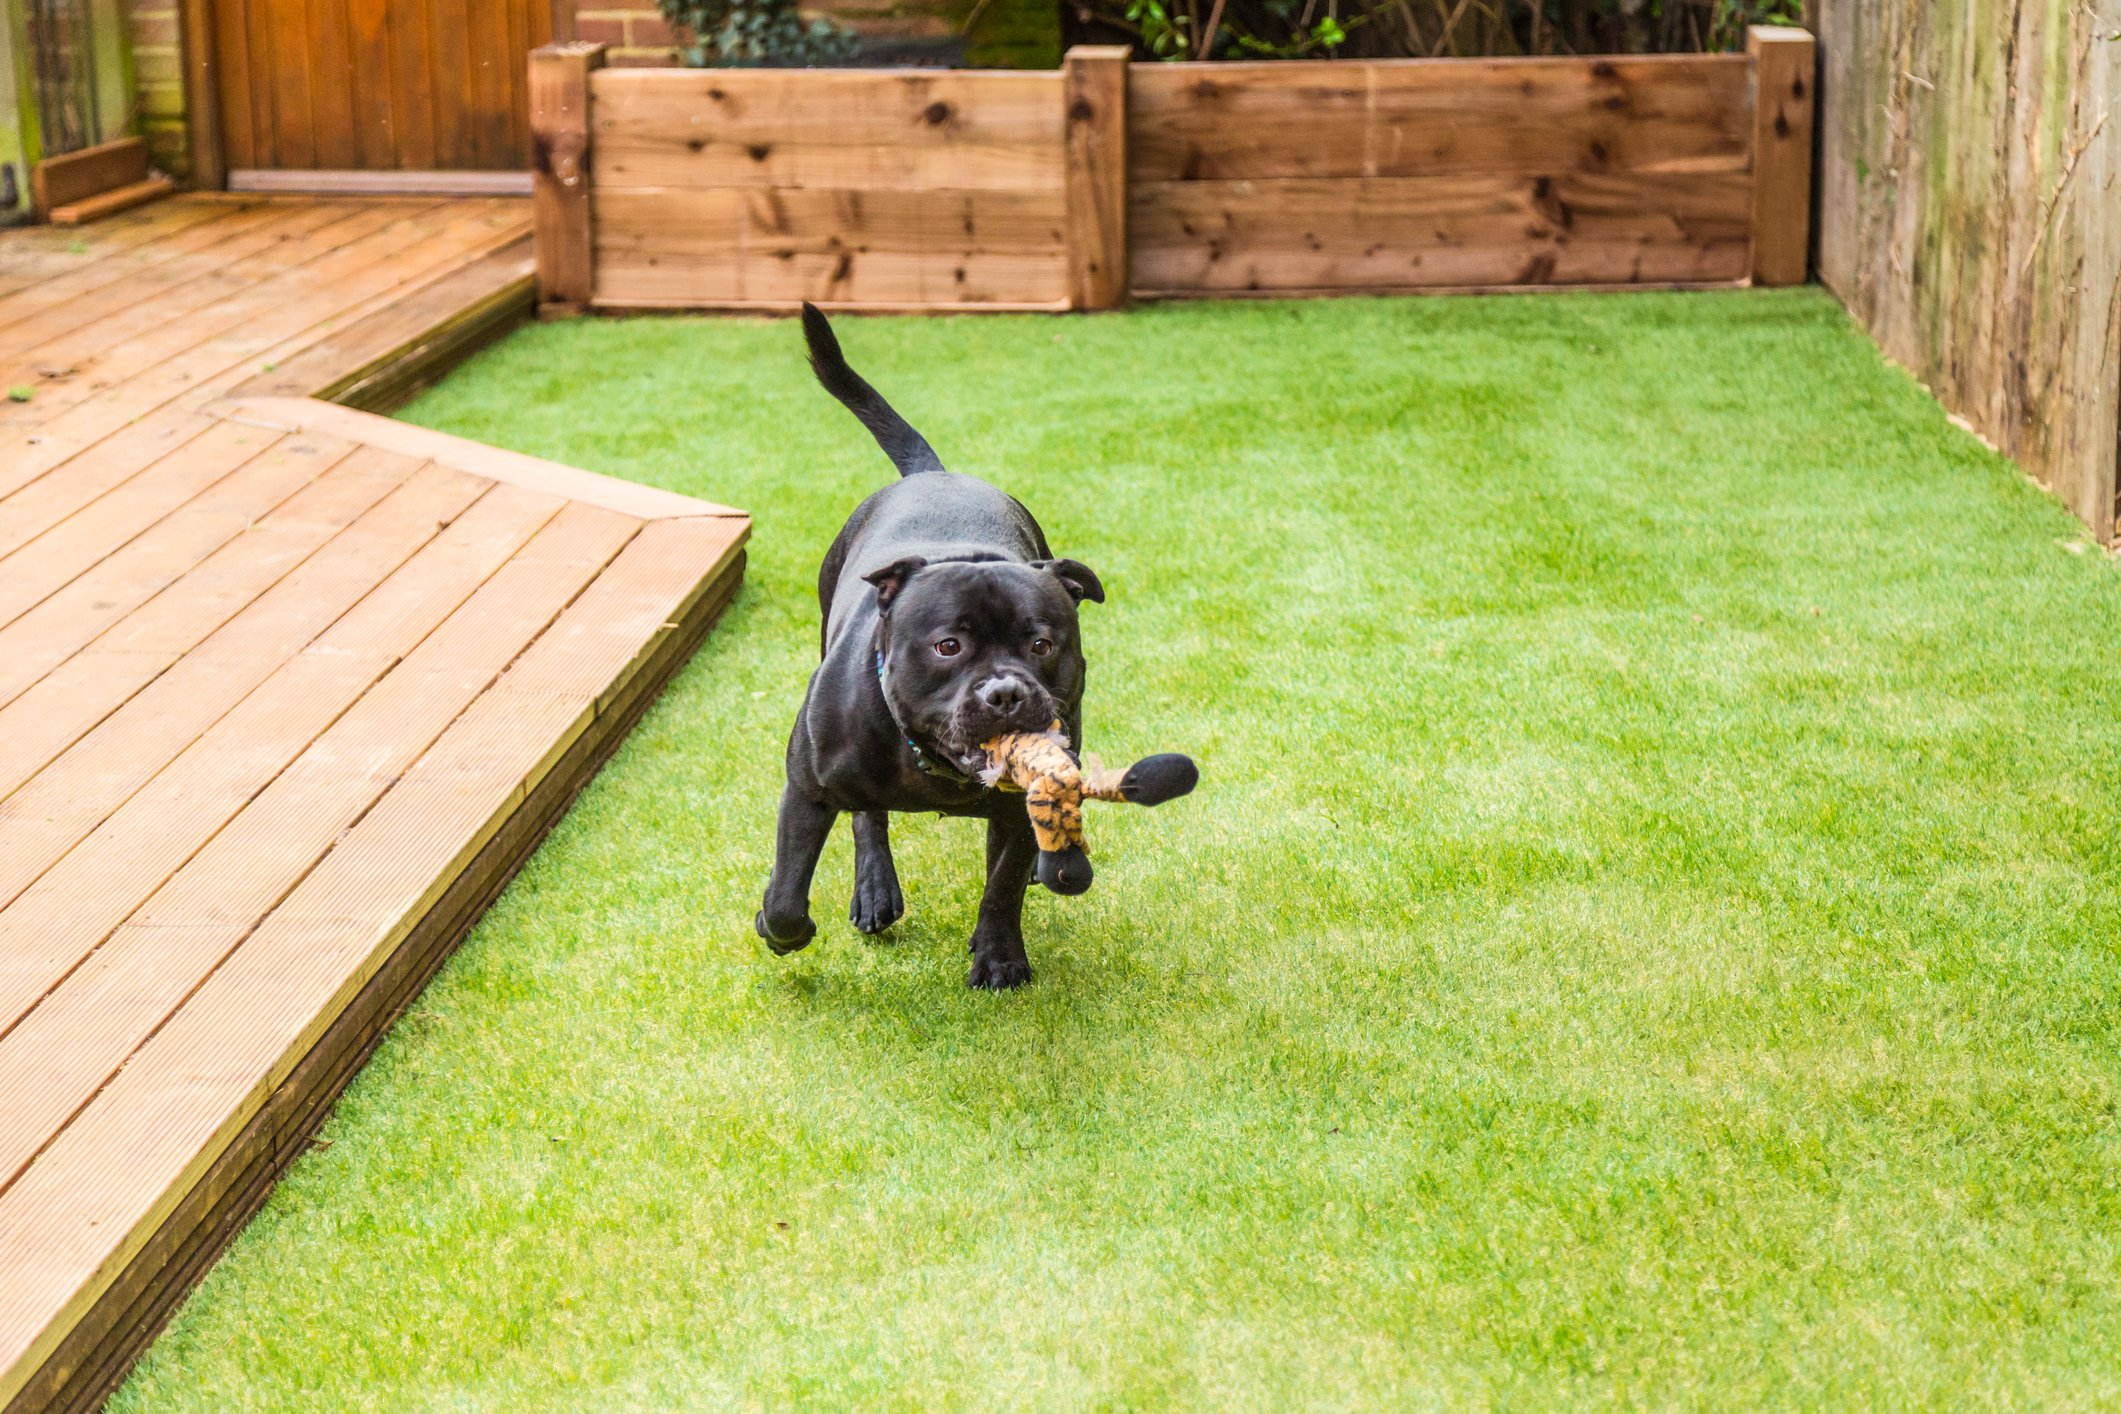 PZG 1-inch Artificial Grass Patch w/Drainage Holes & Rubber Backing | 4-Tone Realistic Synthetic Grass Mat | Heavy & Soft Pet Turf | Lead-Free Fake Grass for Dogs or Outdoor Decor | Size: 5' x 3'